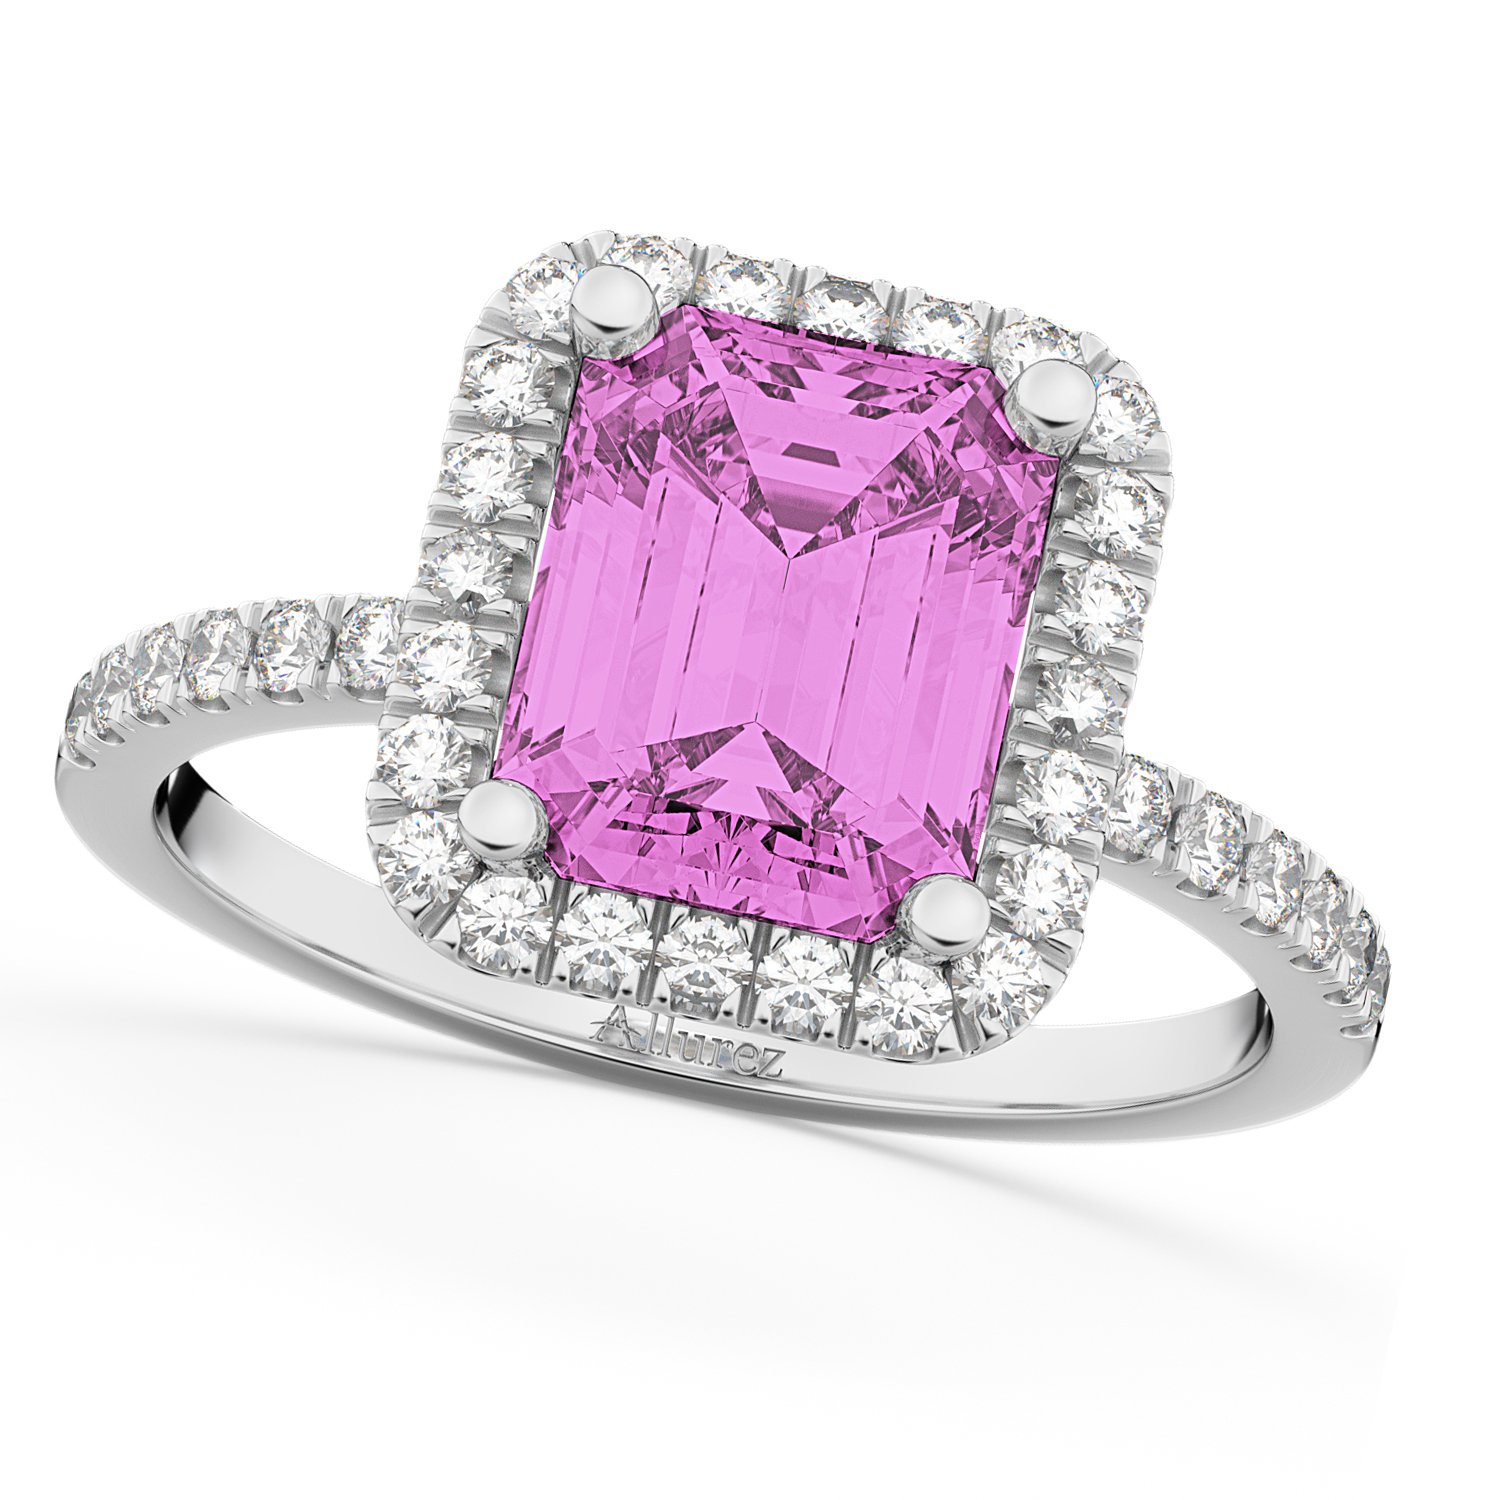 Pink Sapphire & Diamond Engagement Ring 18k White Gold 3.32ct